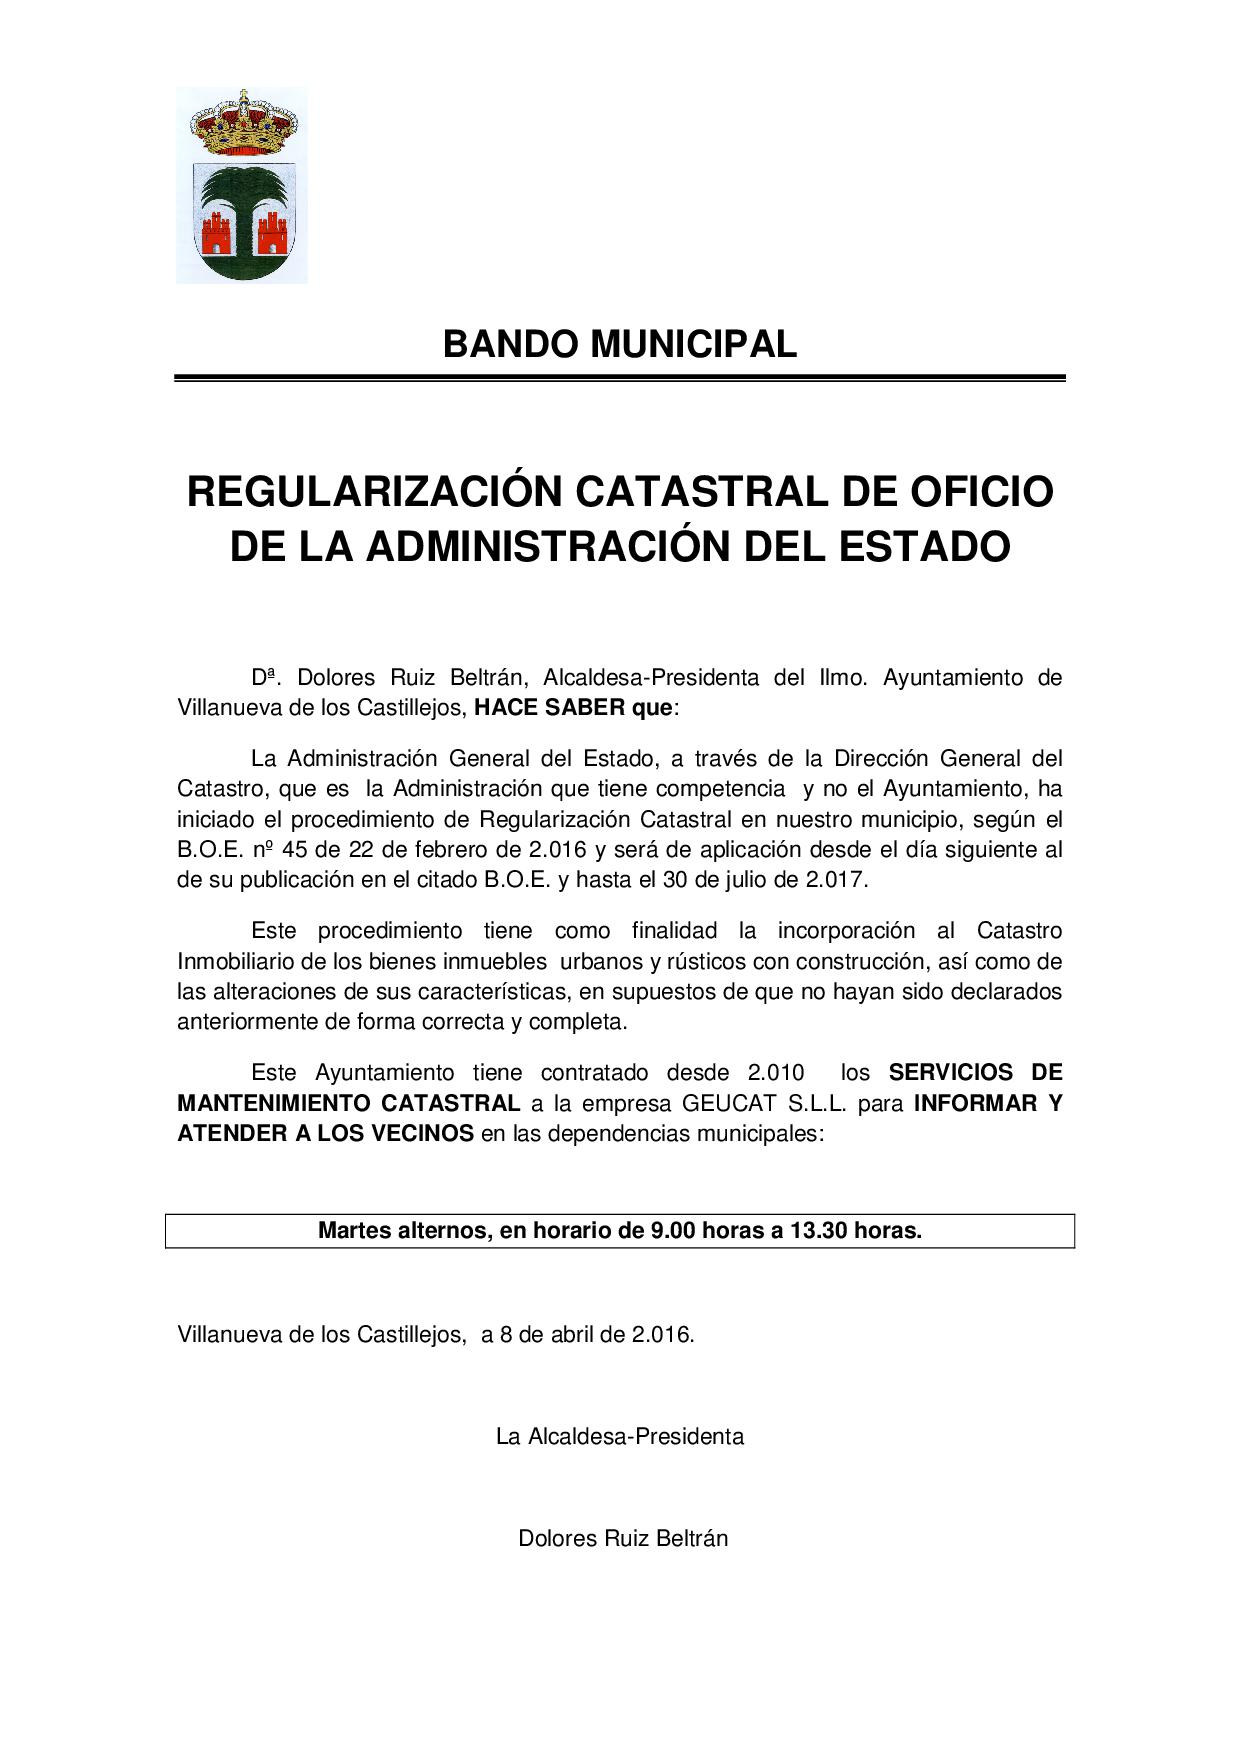 BANDO MUNICIPAL REGULARIZACION CATASTRAL